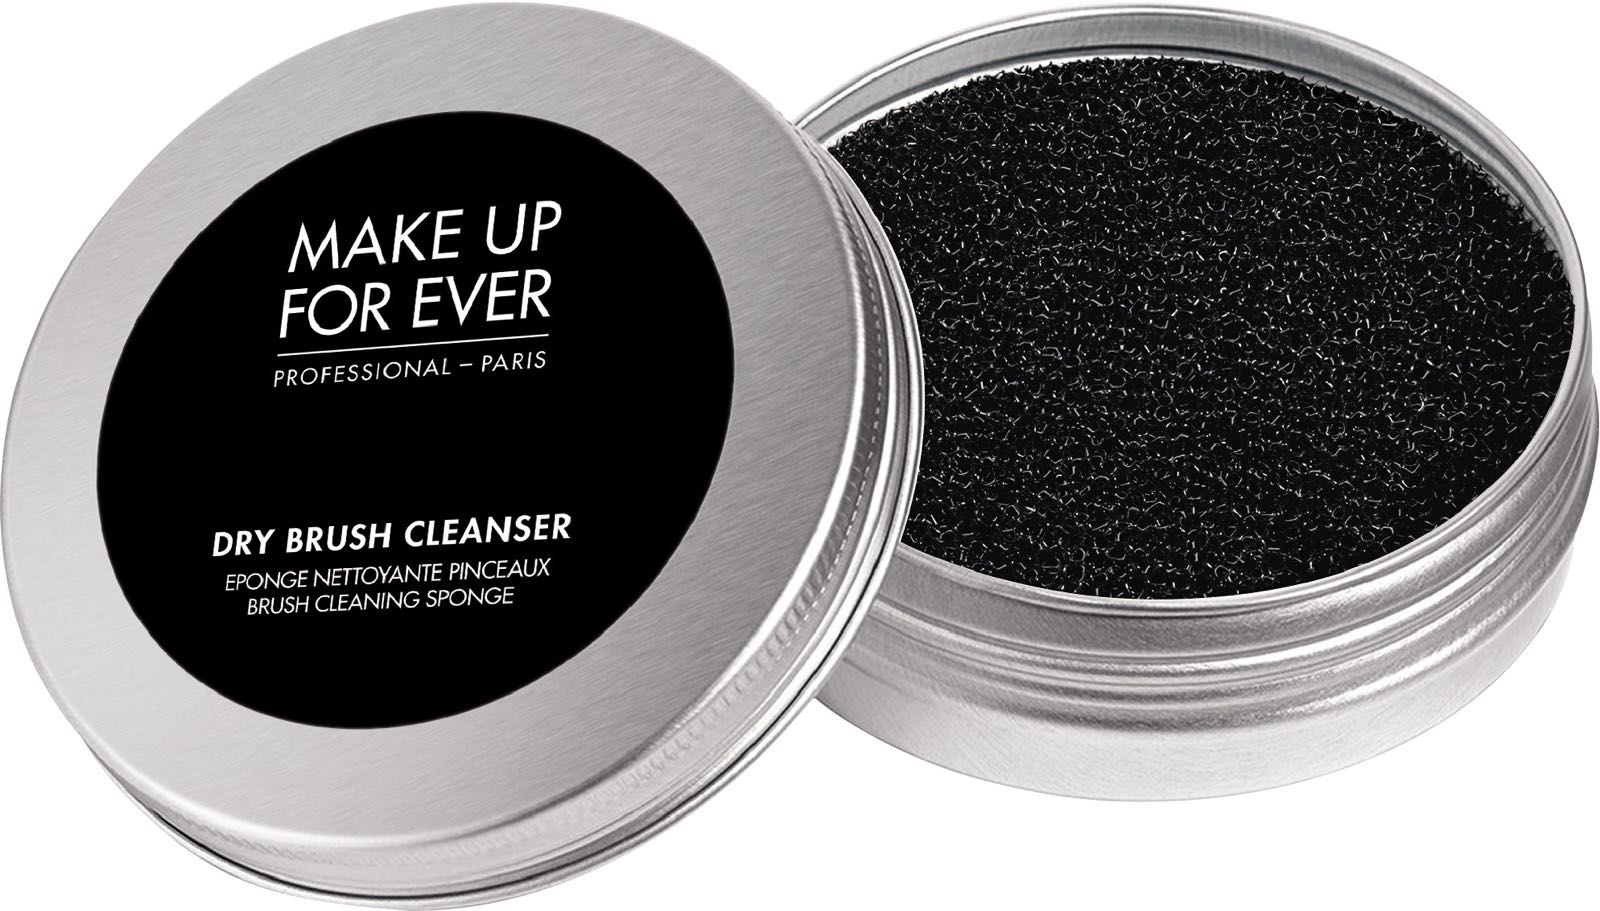 Make Up For Ever Dry Brush Cleanser